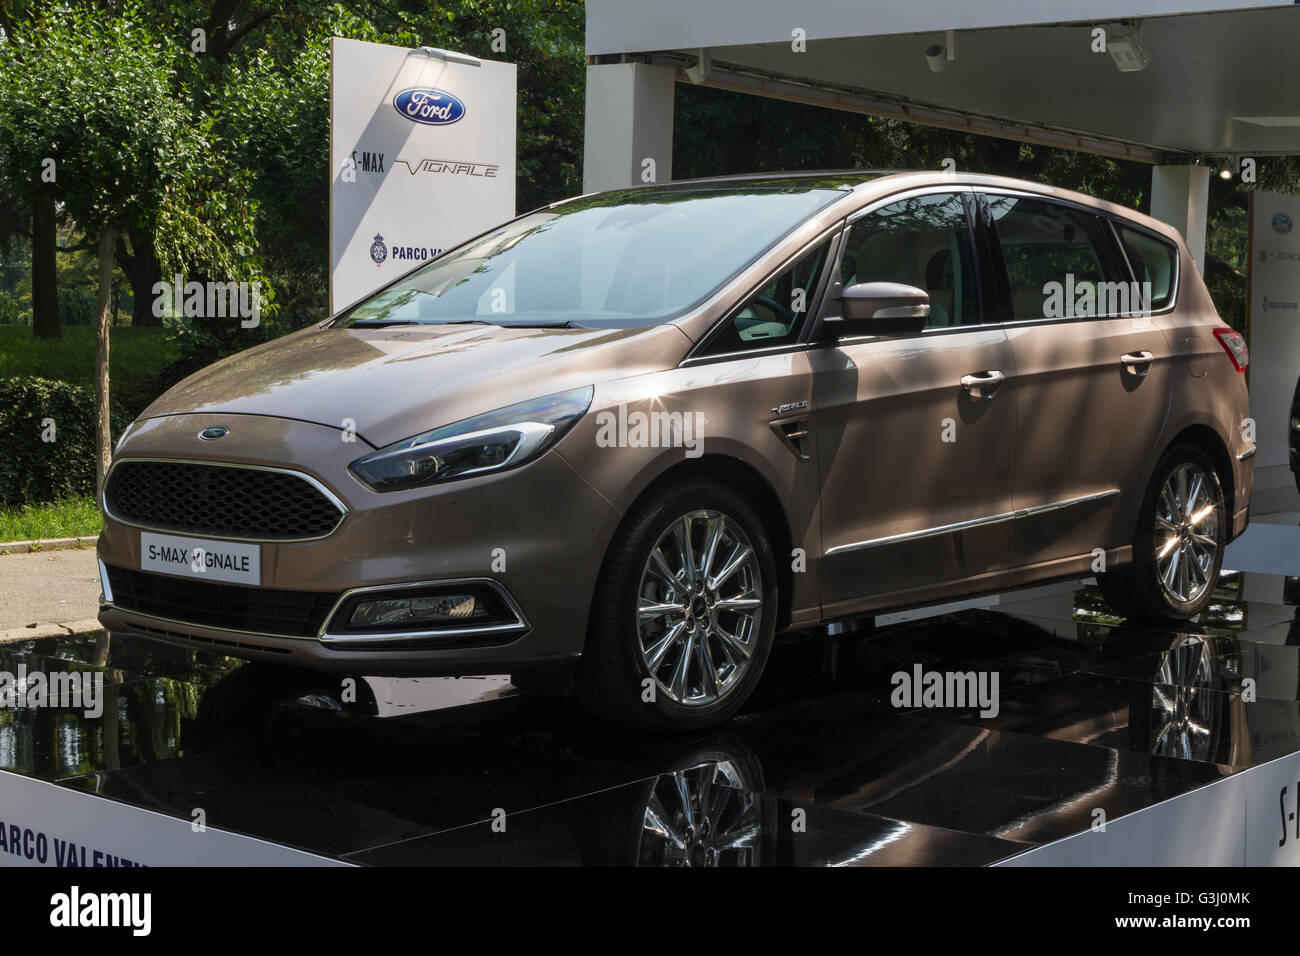 Turin, Italy. 08th June, 2016. A Ford S-MAX Vignale during the Parco Valentino car show, They host cars from worldwide - Stock Image